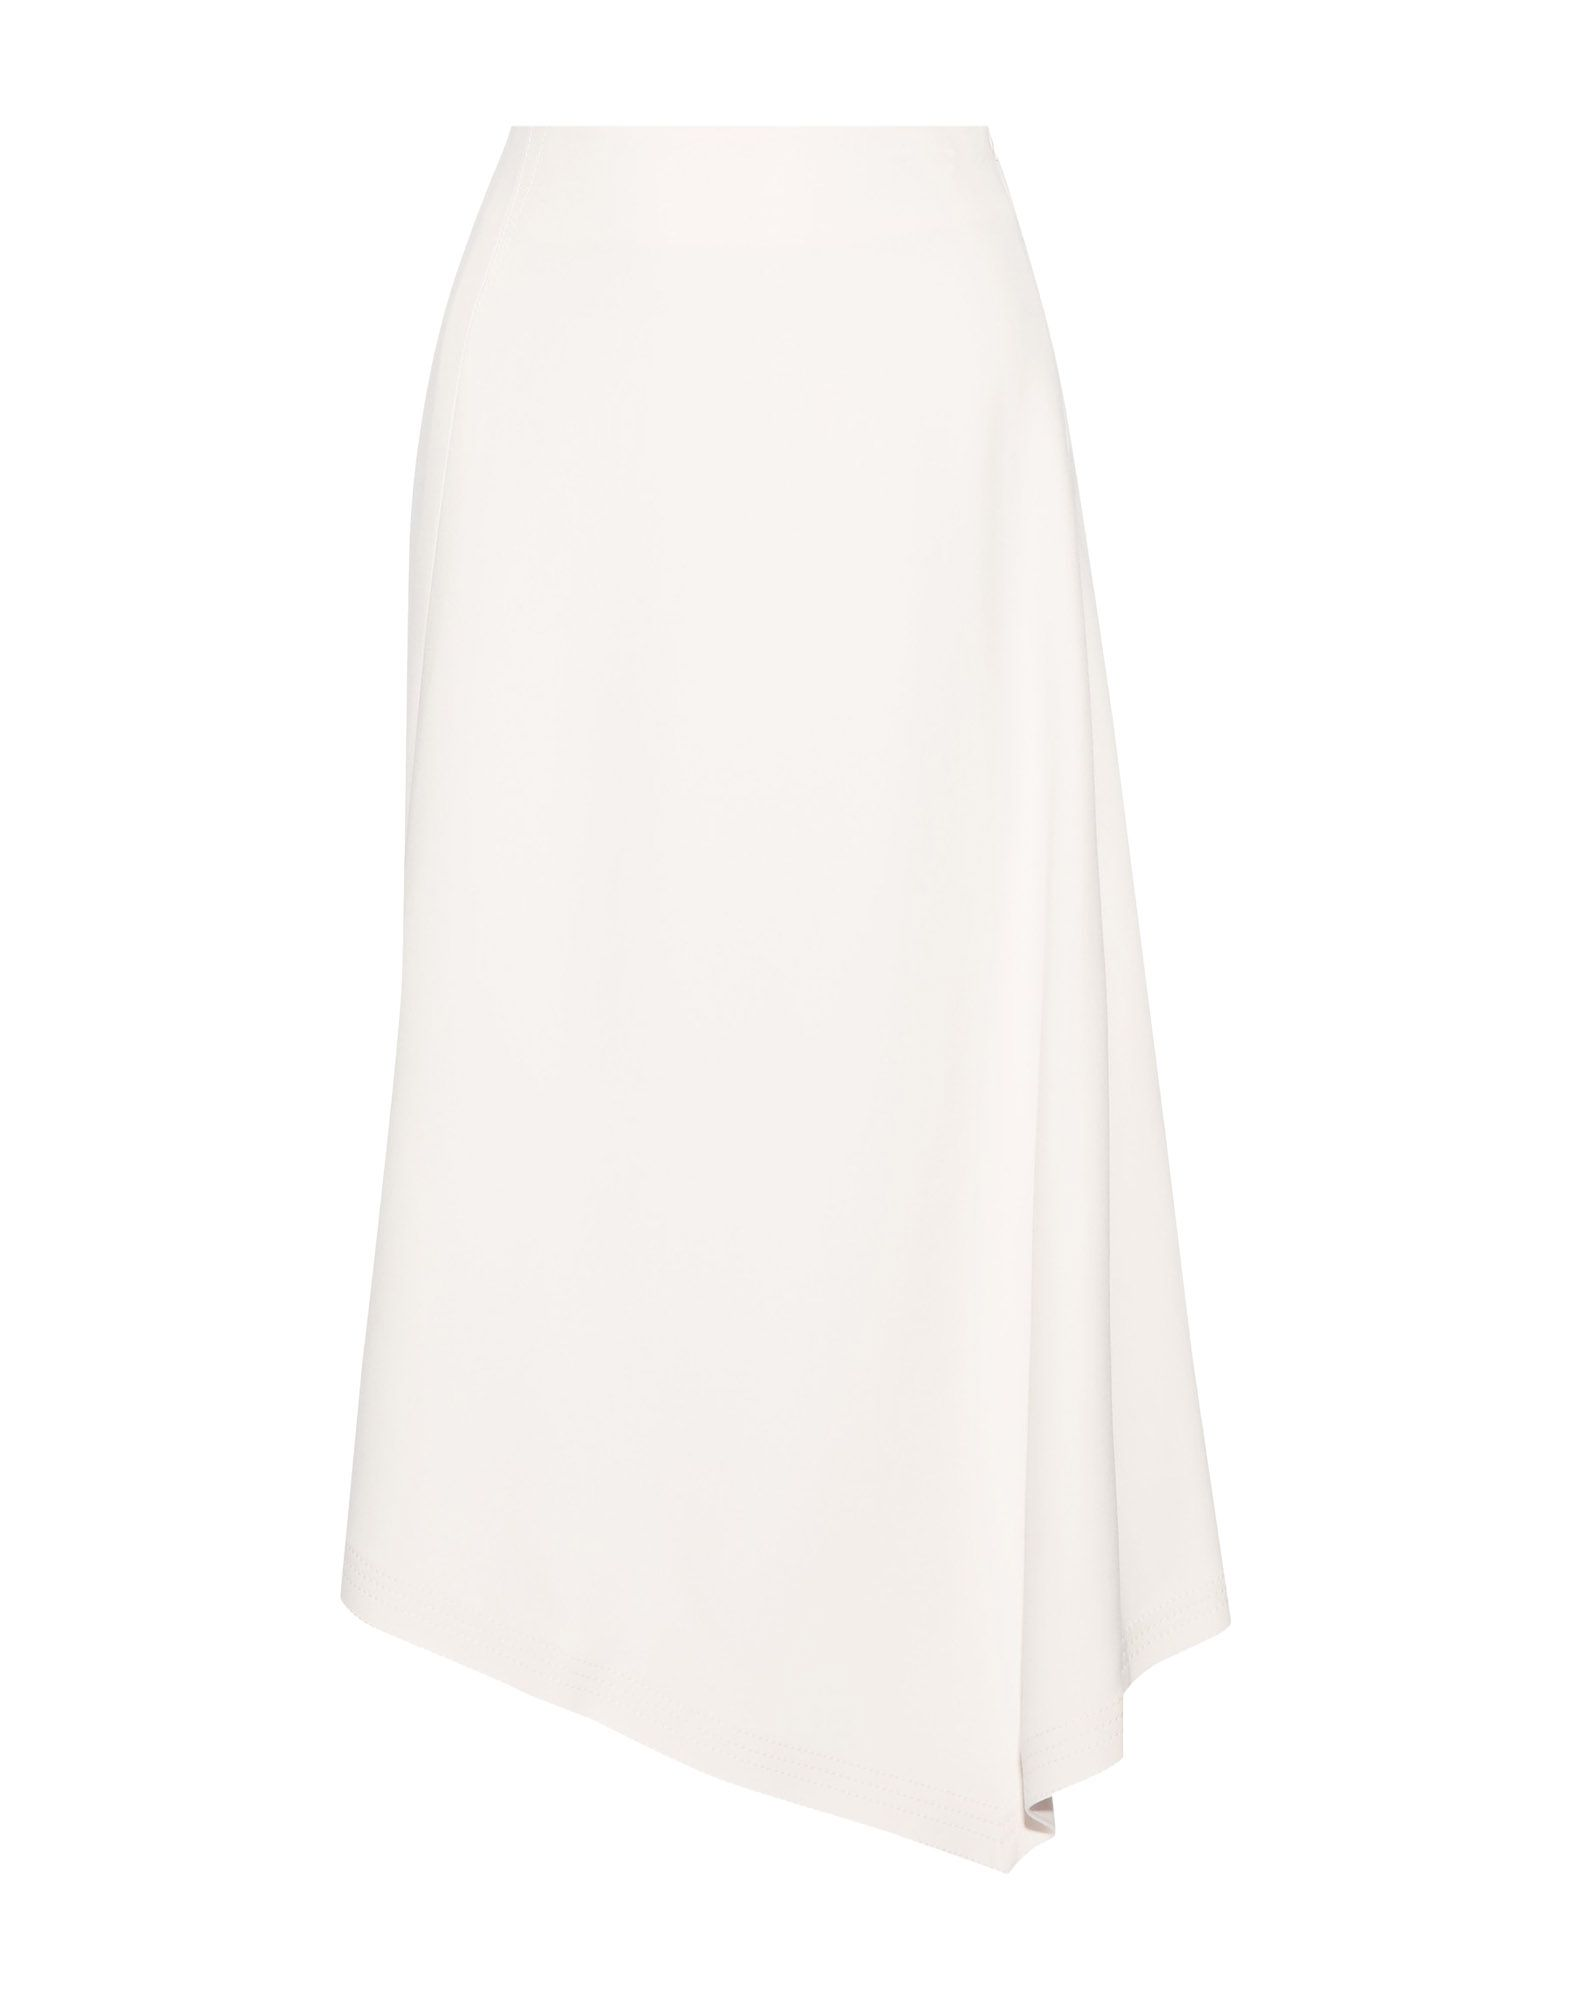 VICTOR ALFARO Maxi Skirts in White